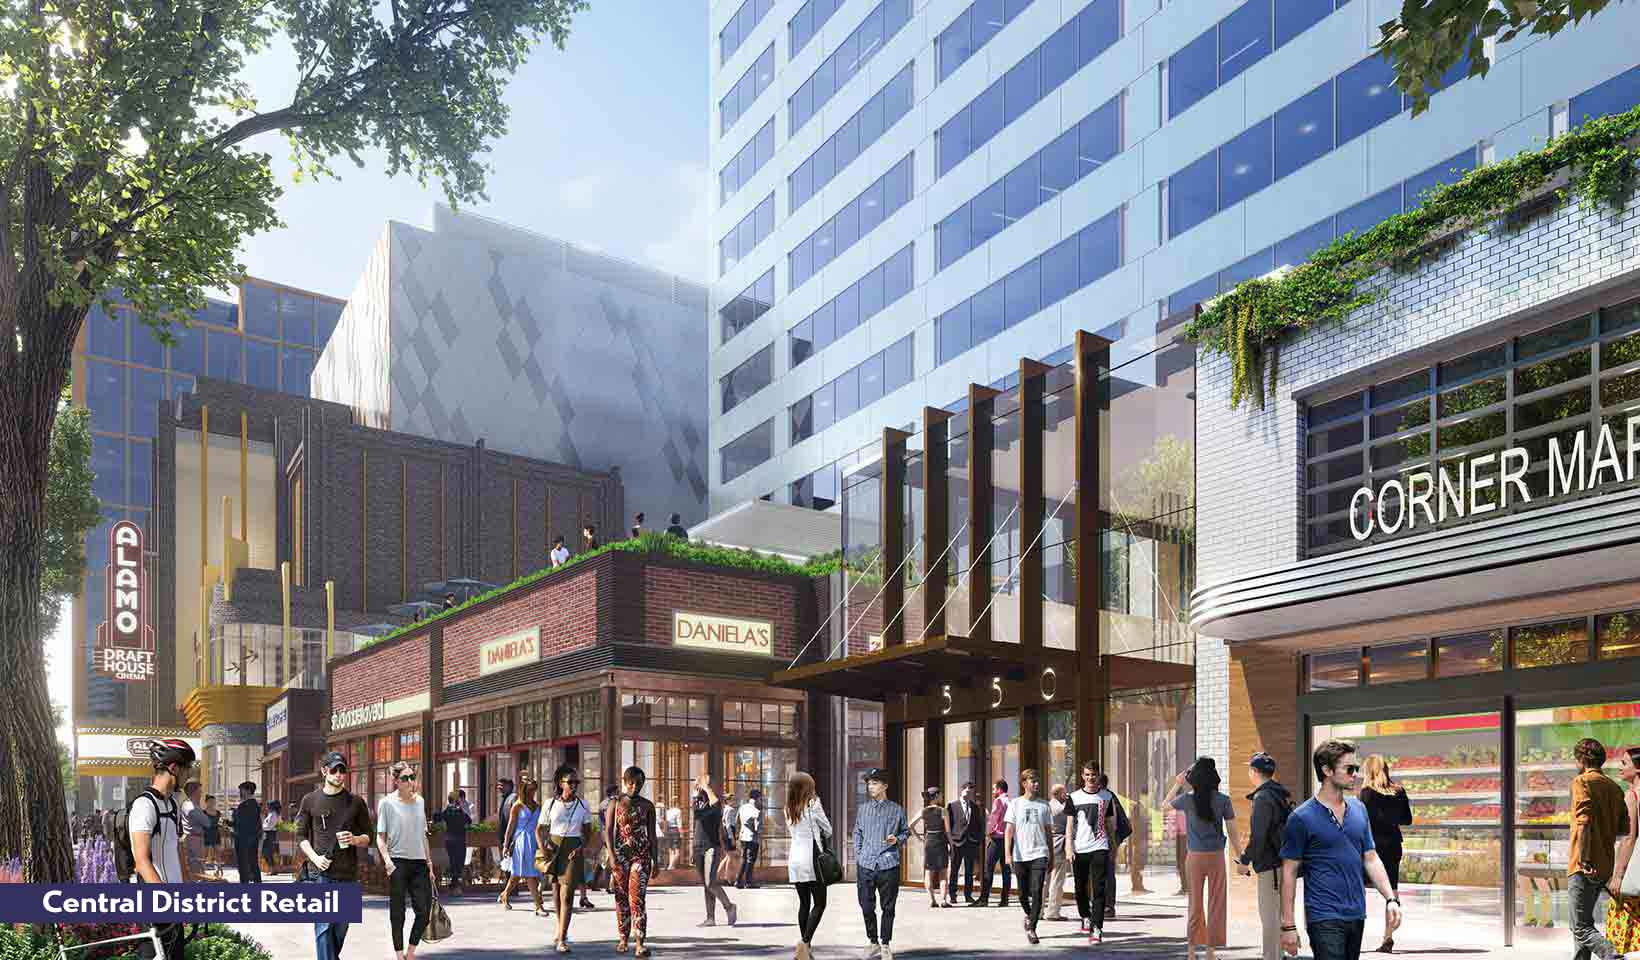 Rendering of people enjoying the Central District Retail space